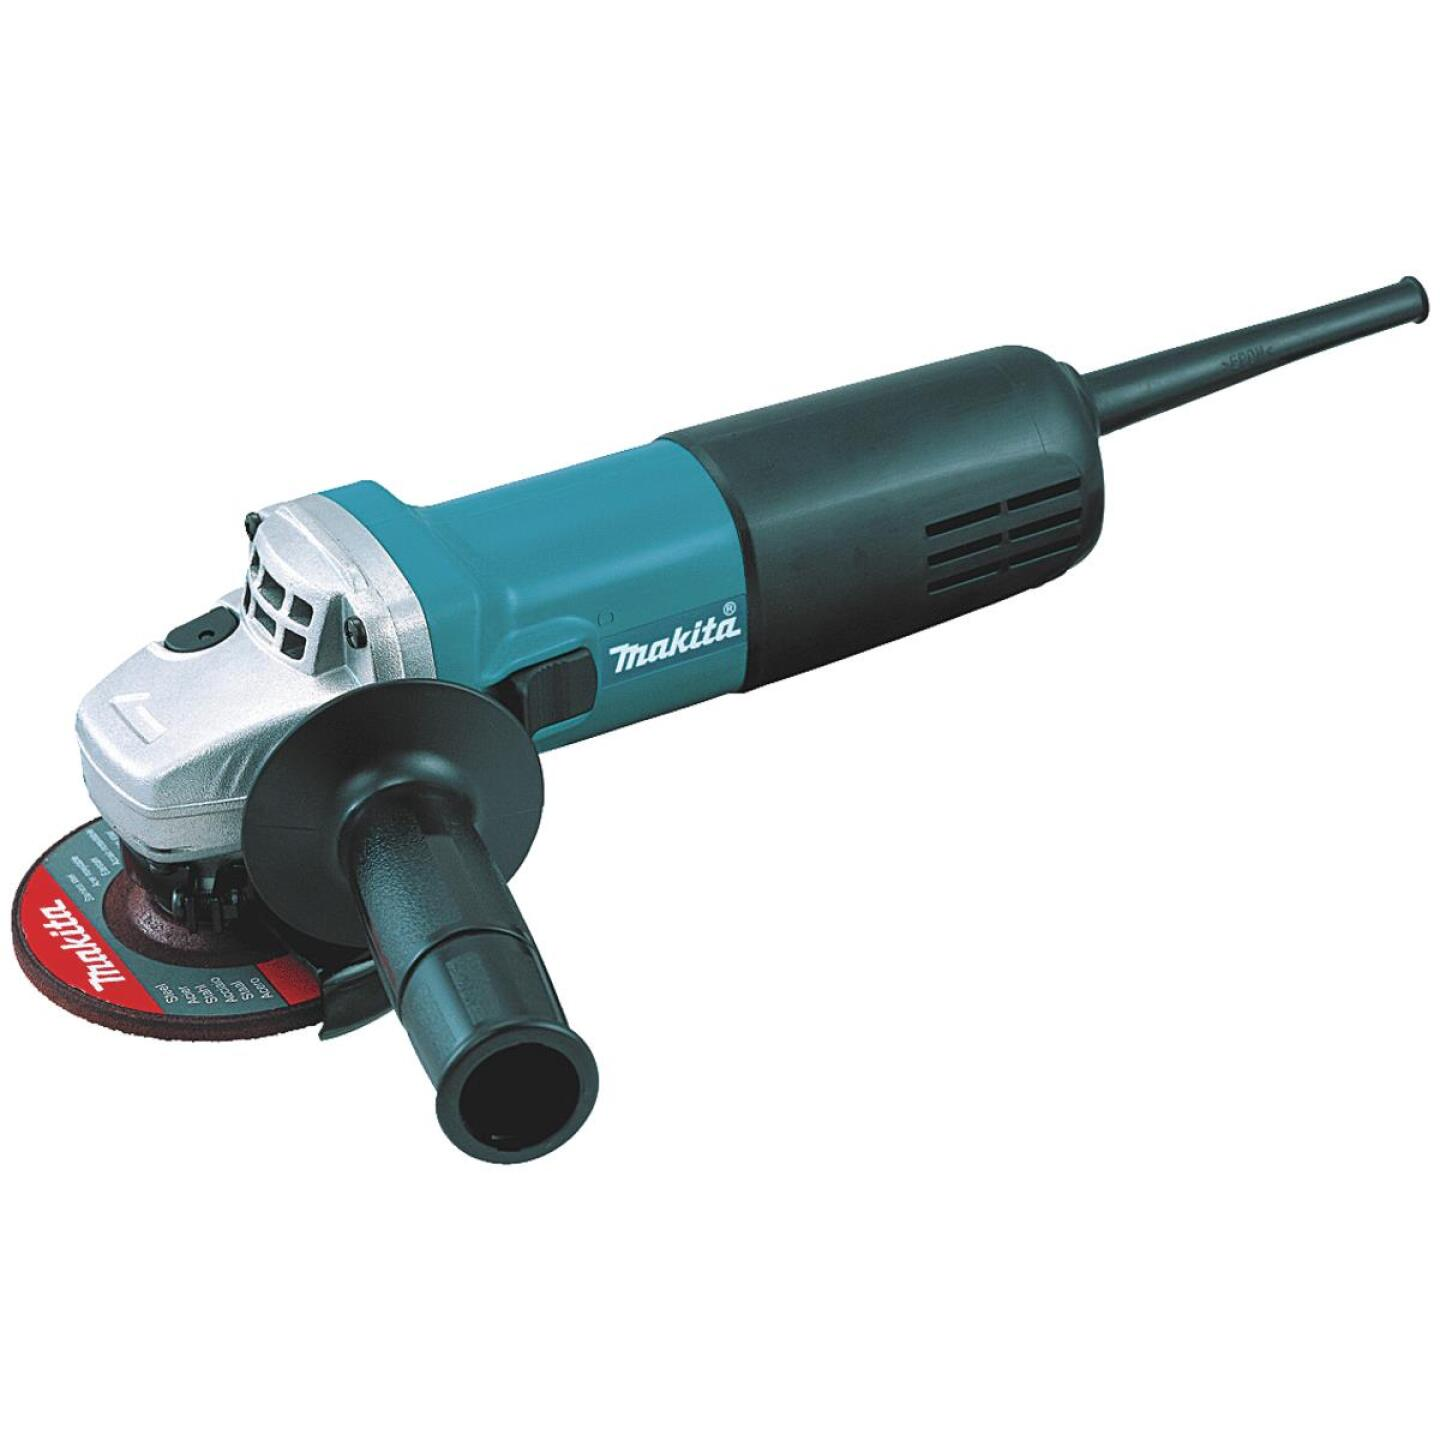 Makita 4 In. 6-Amp Angle Grinder Kit Image 3